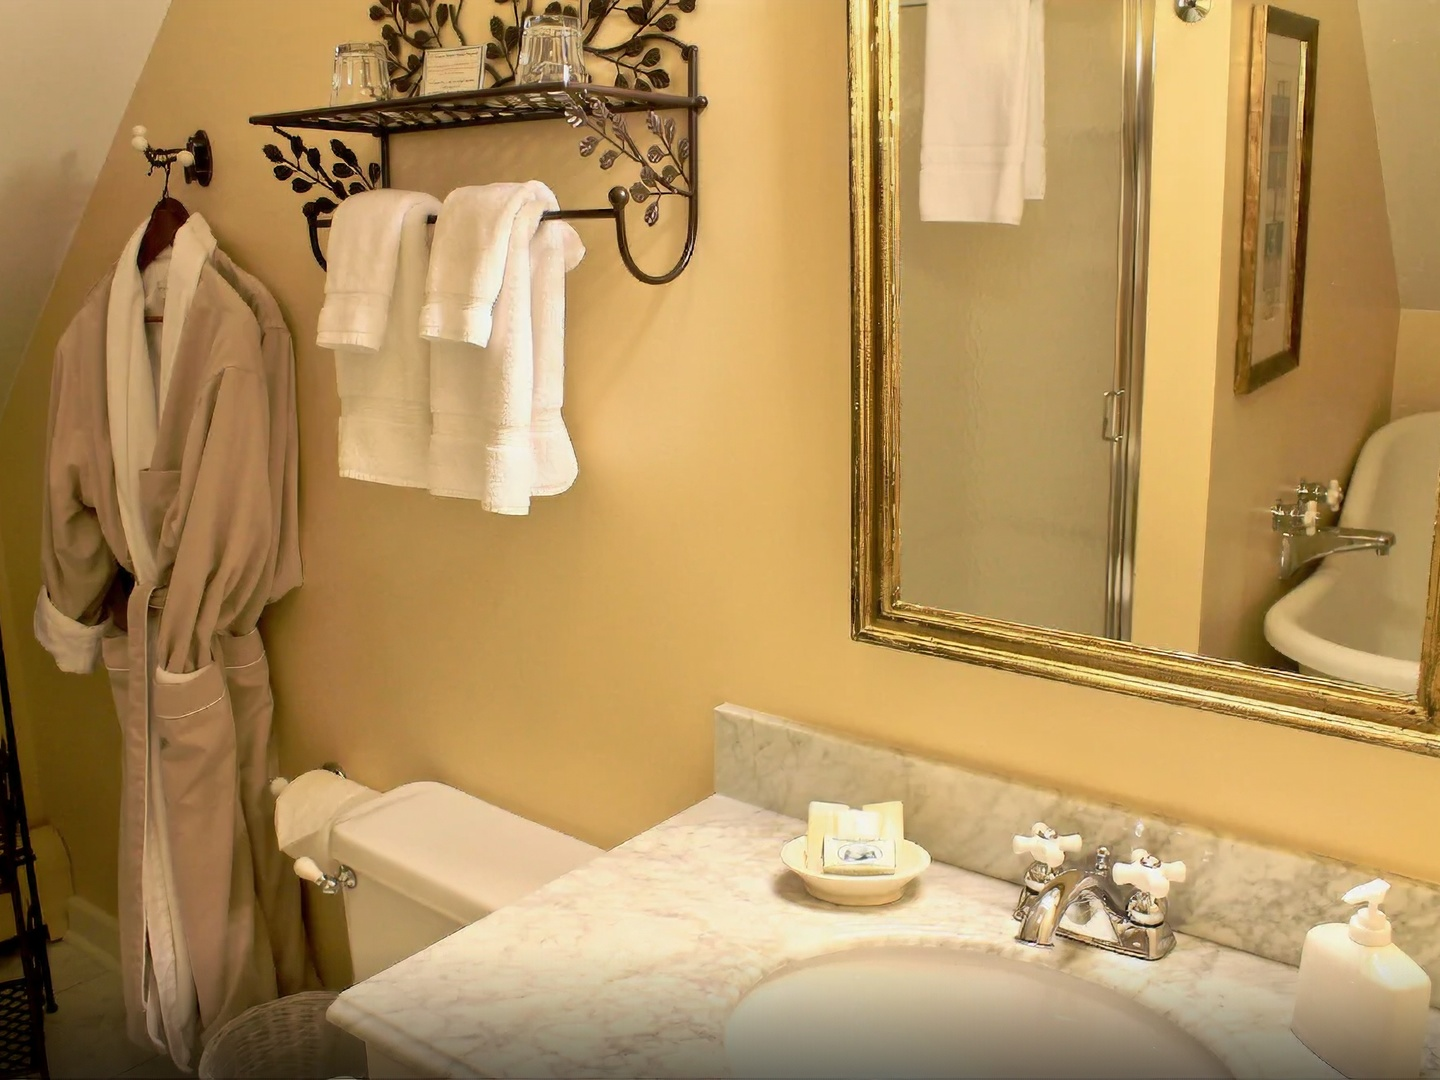 A hotel room with a sink and a mirror at Willard Street Inn.